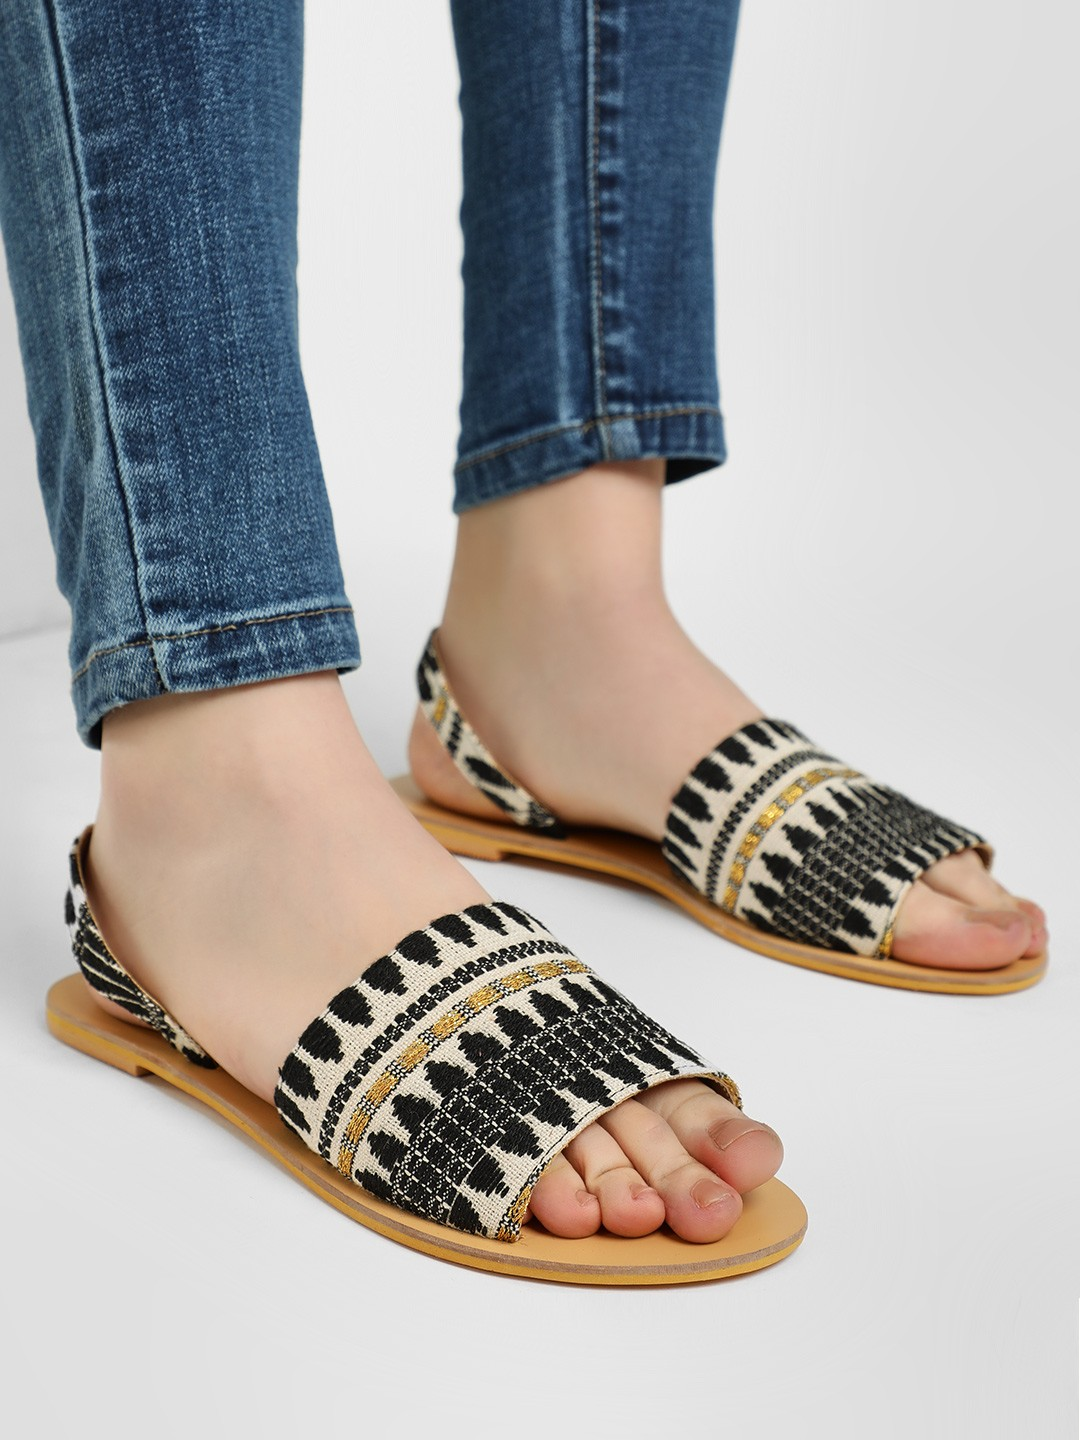 KOOVS BLACK MULTI Embroidered Slingback Flat Sandals 1